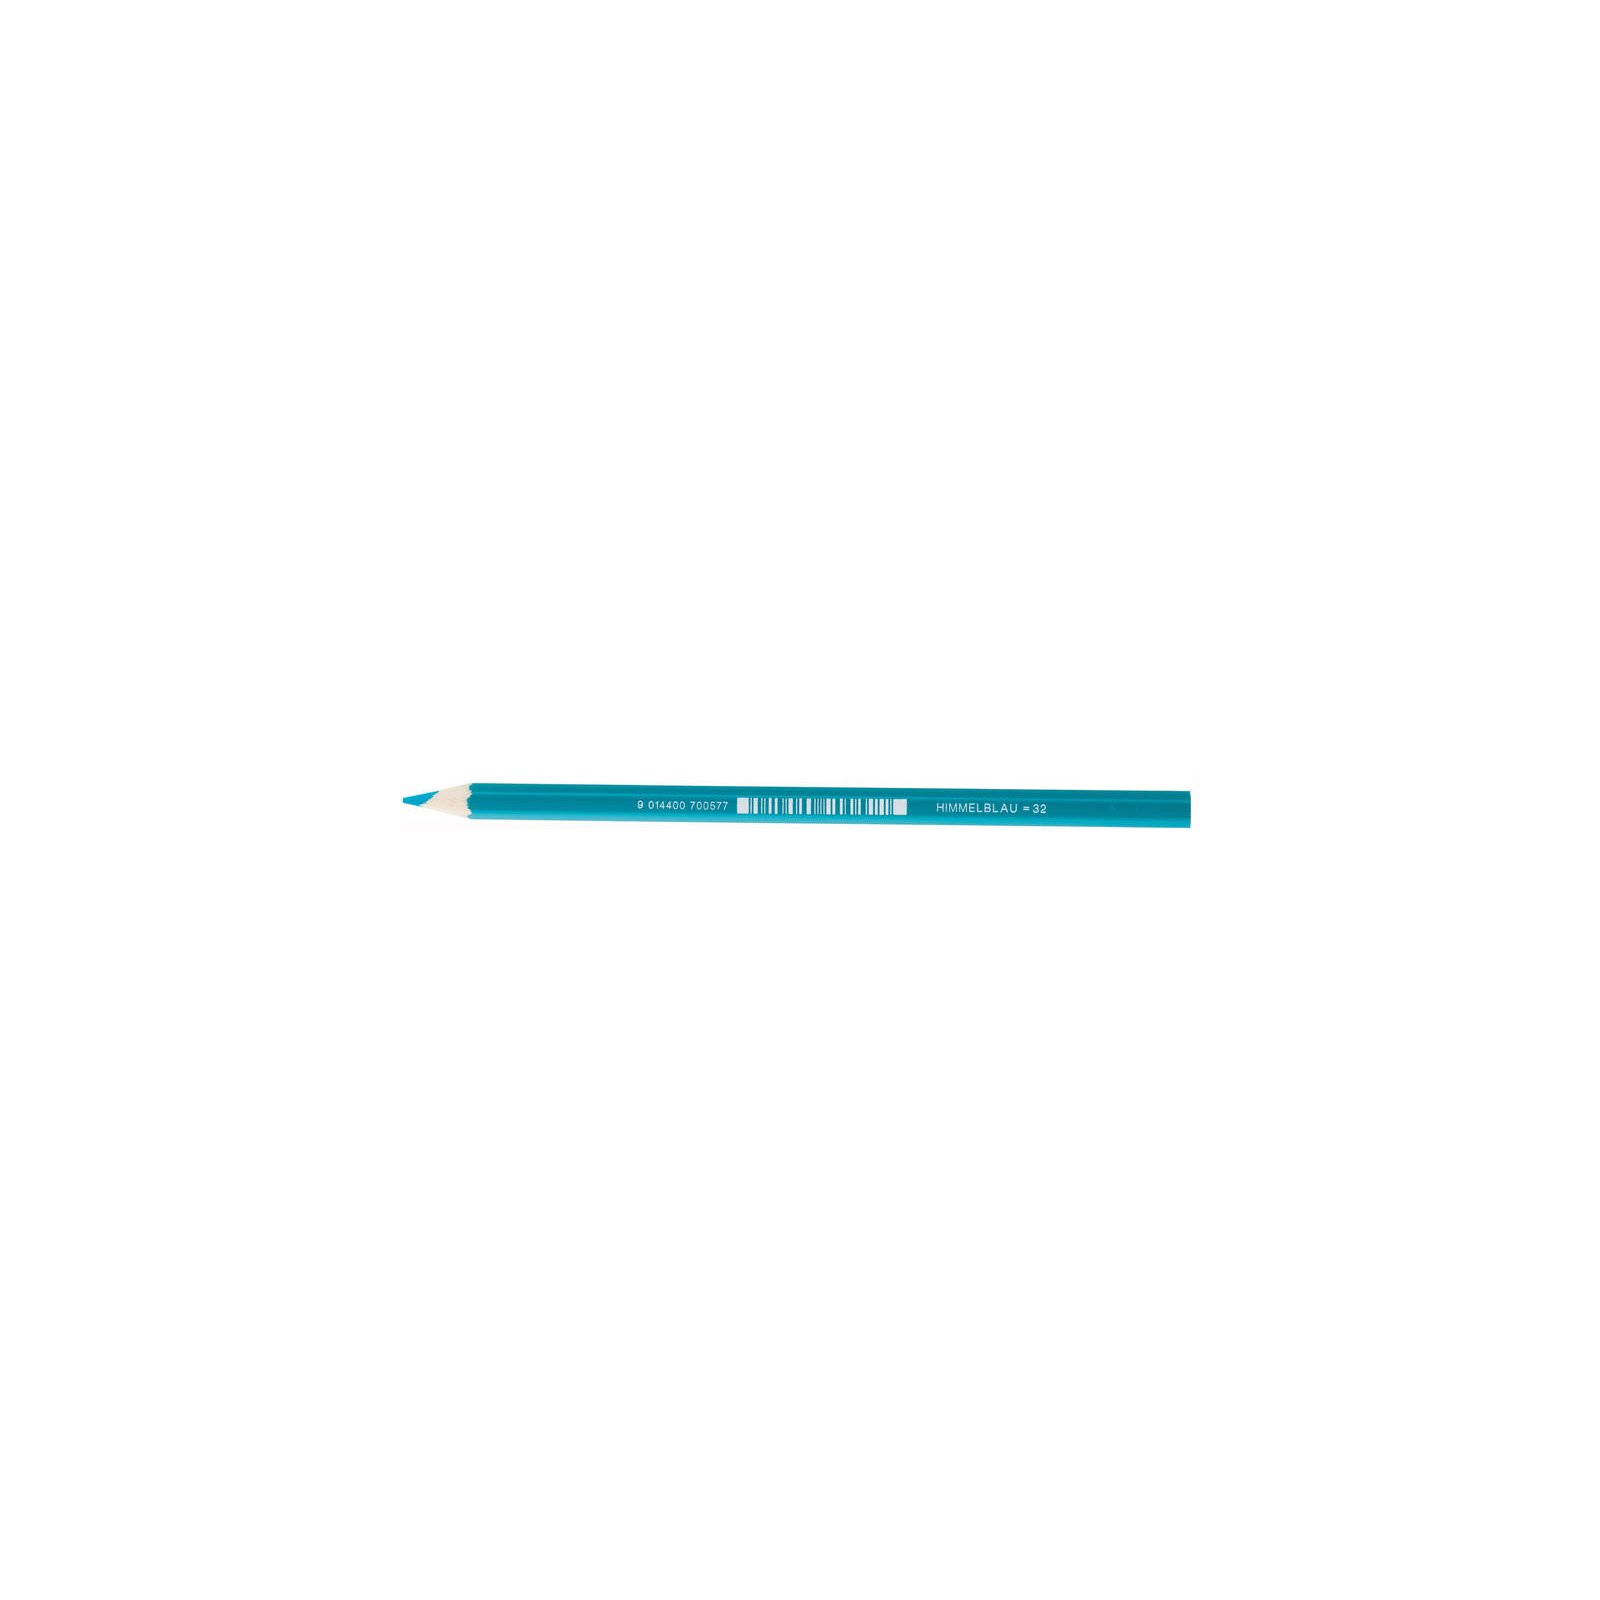 JOLLY Buntstift Supersticks Classic Einzelstift Himmelblau = 32